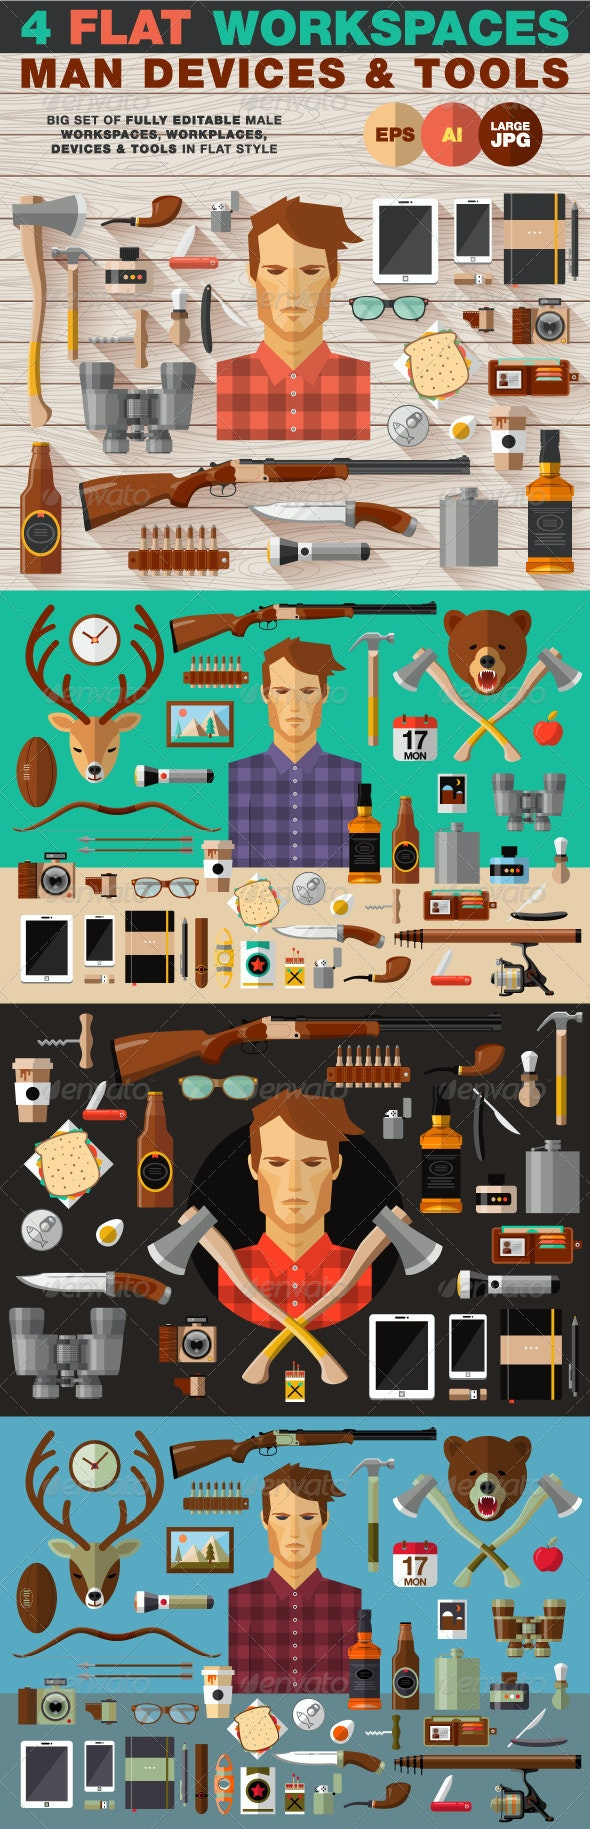 Male Devices & Tools in Flat Style - Objects Vectors